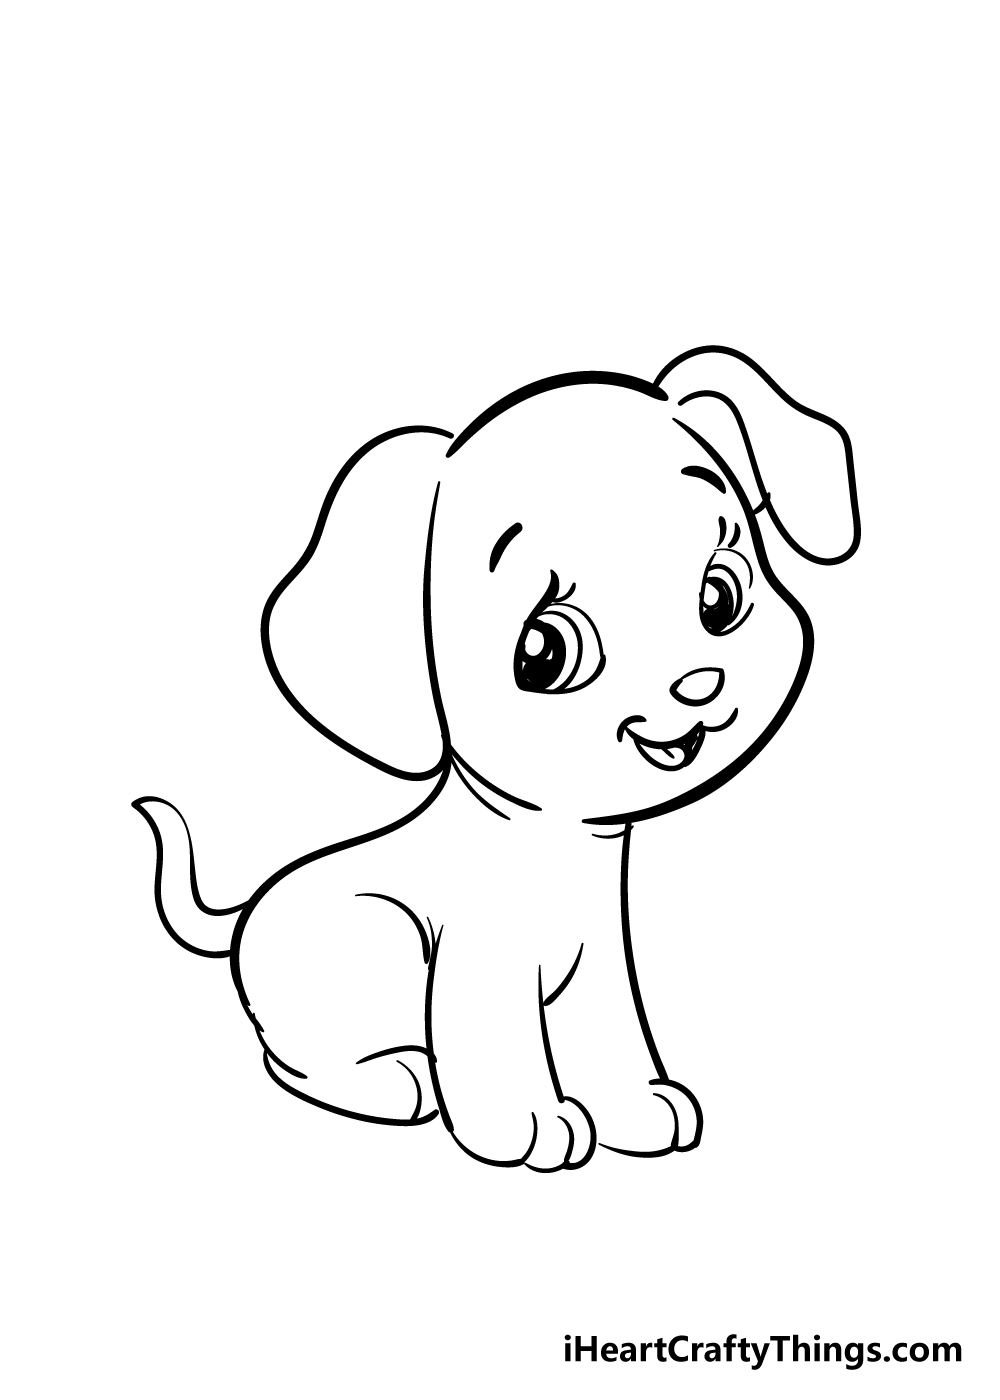 puppy drawing step 6